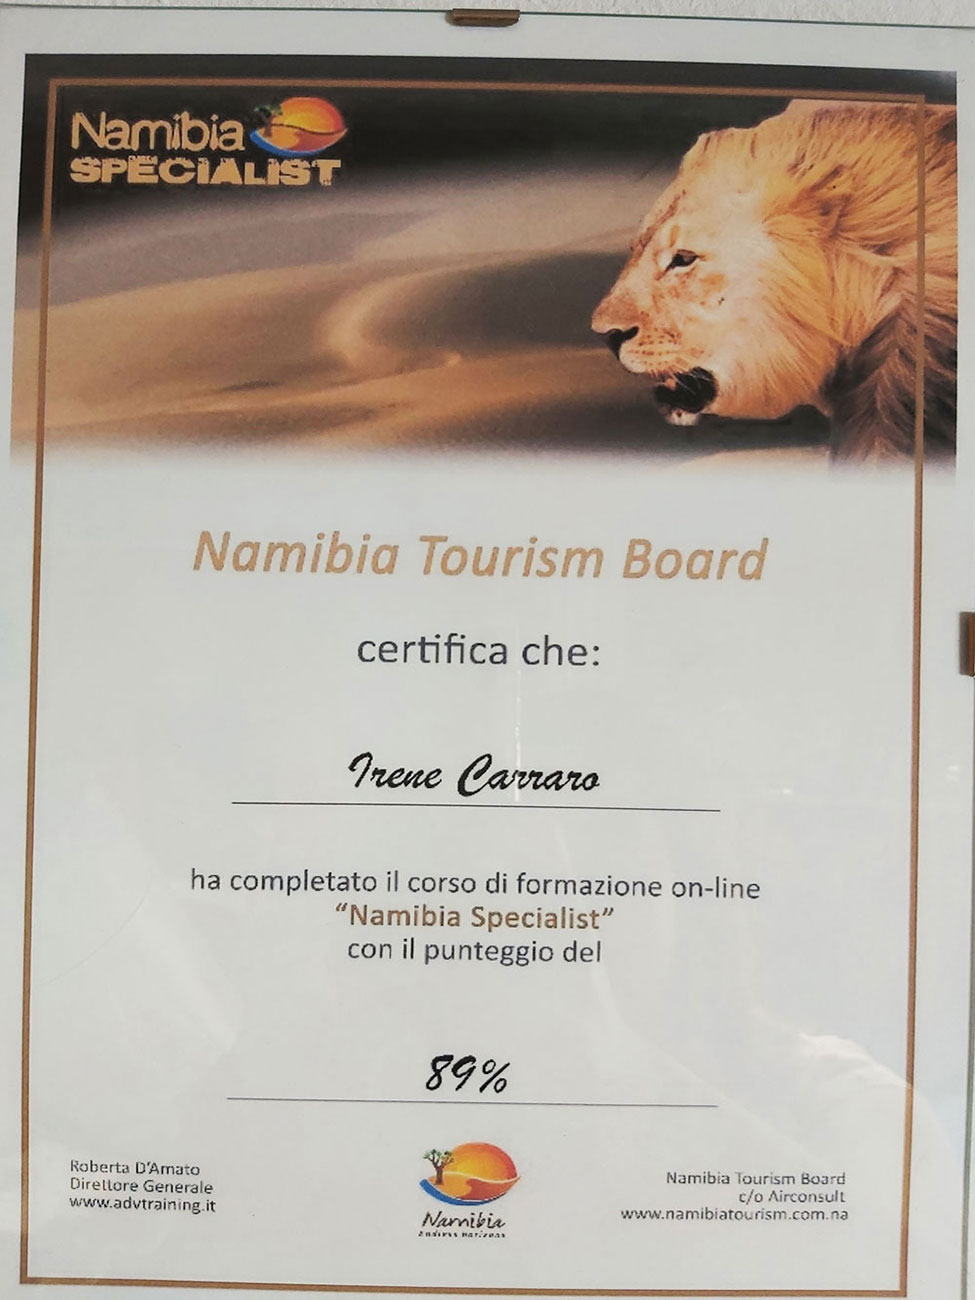 Namibia Specialist